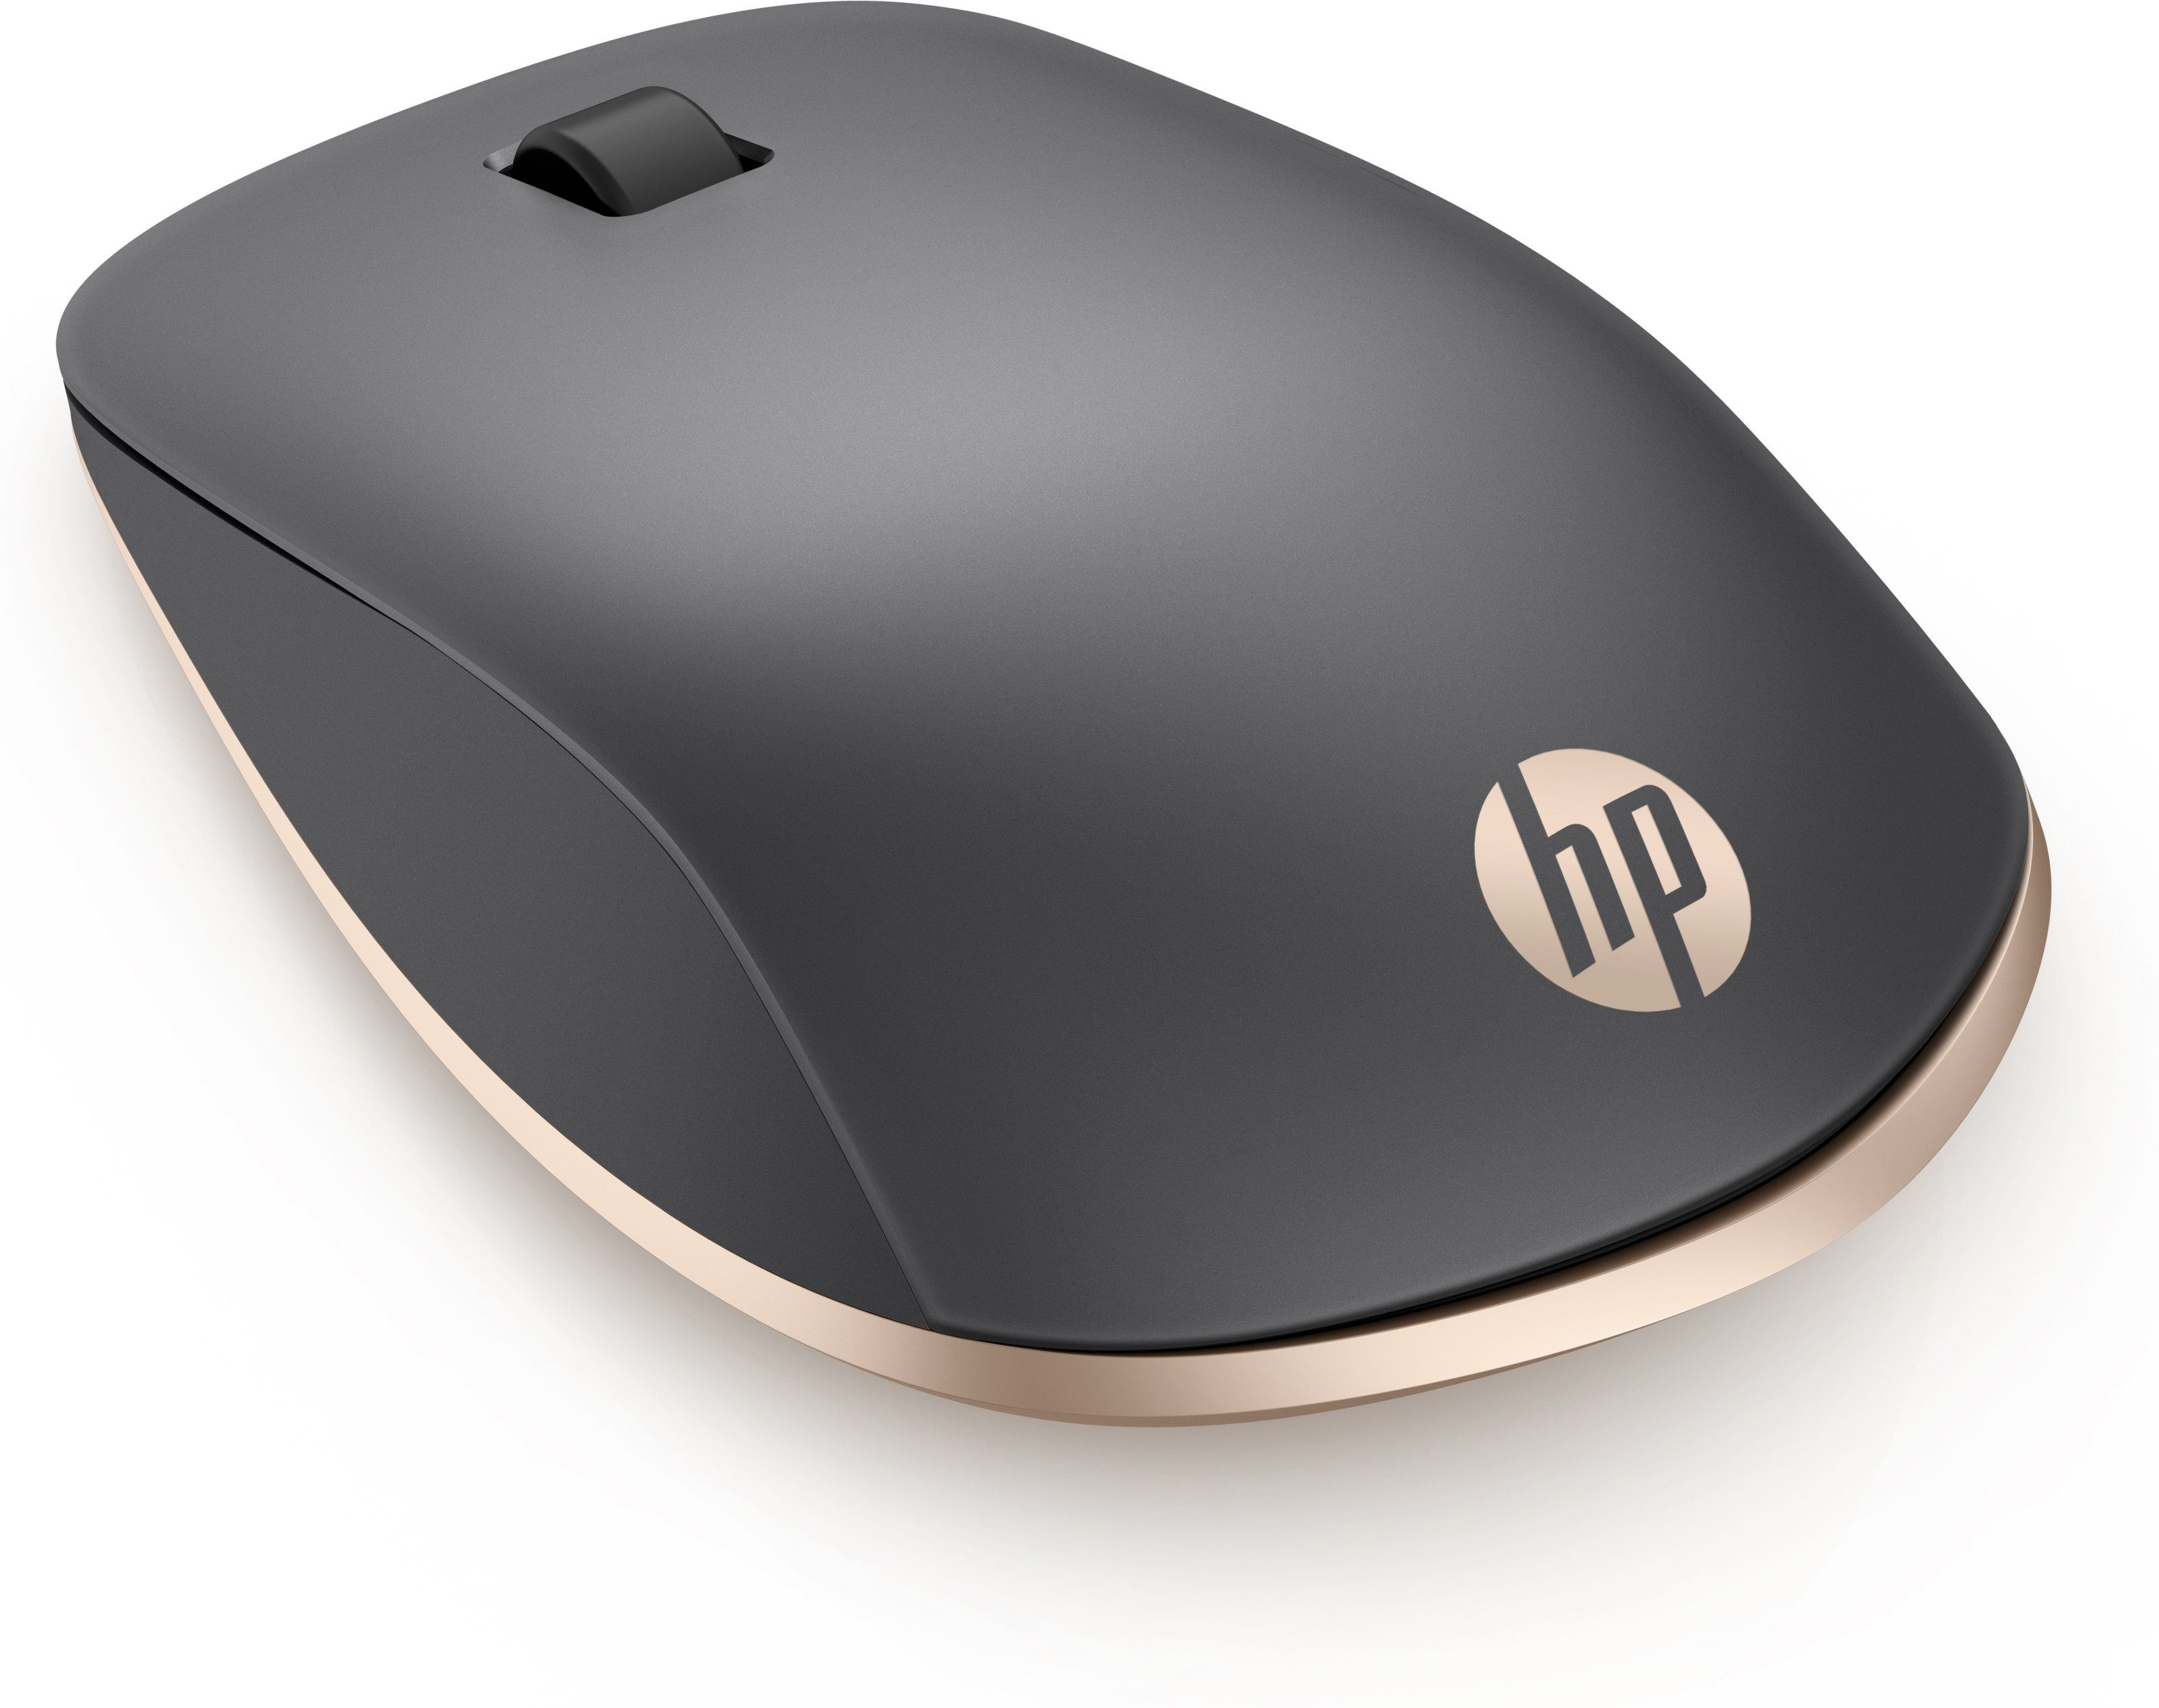 HP Maus »Z5000 Wireless Mouse Spectre Edition«